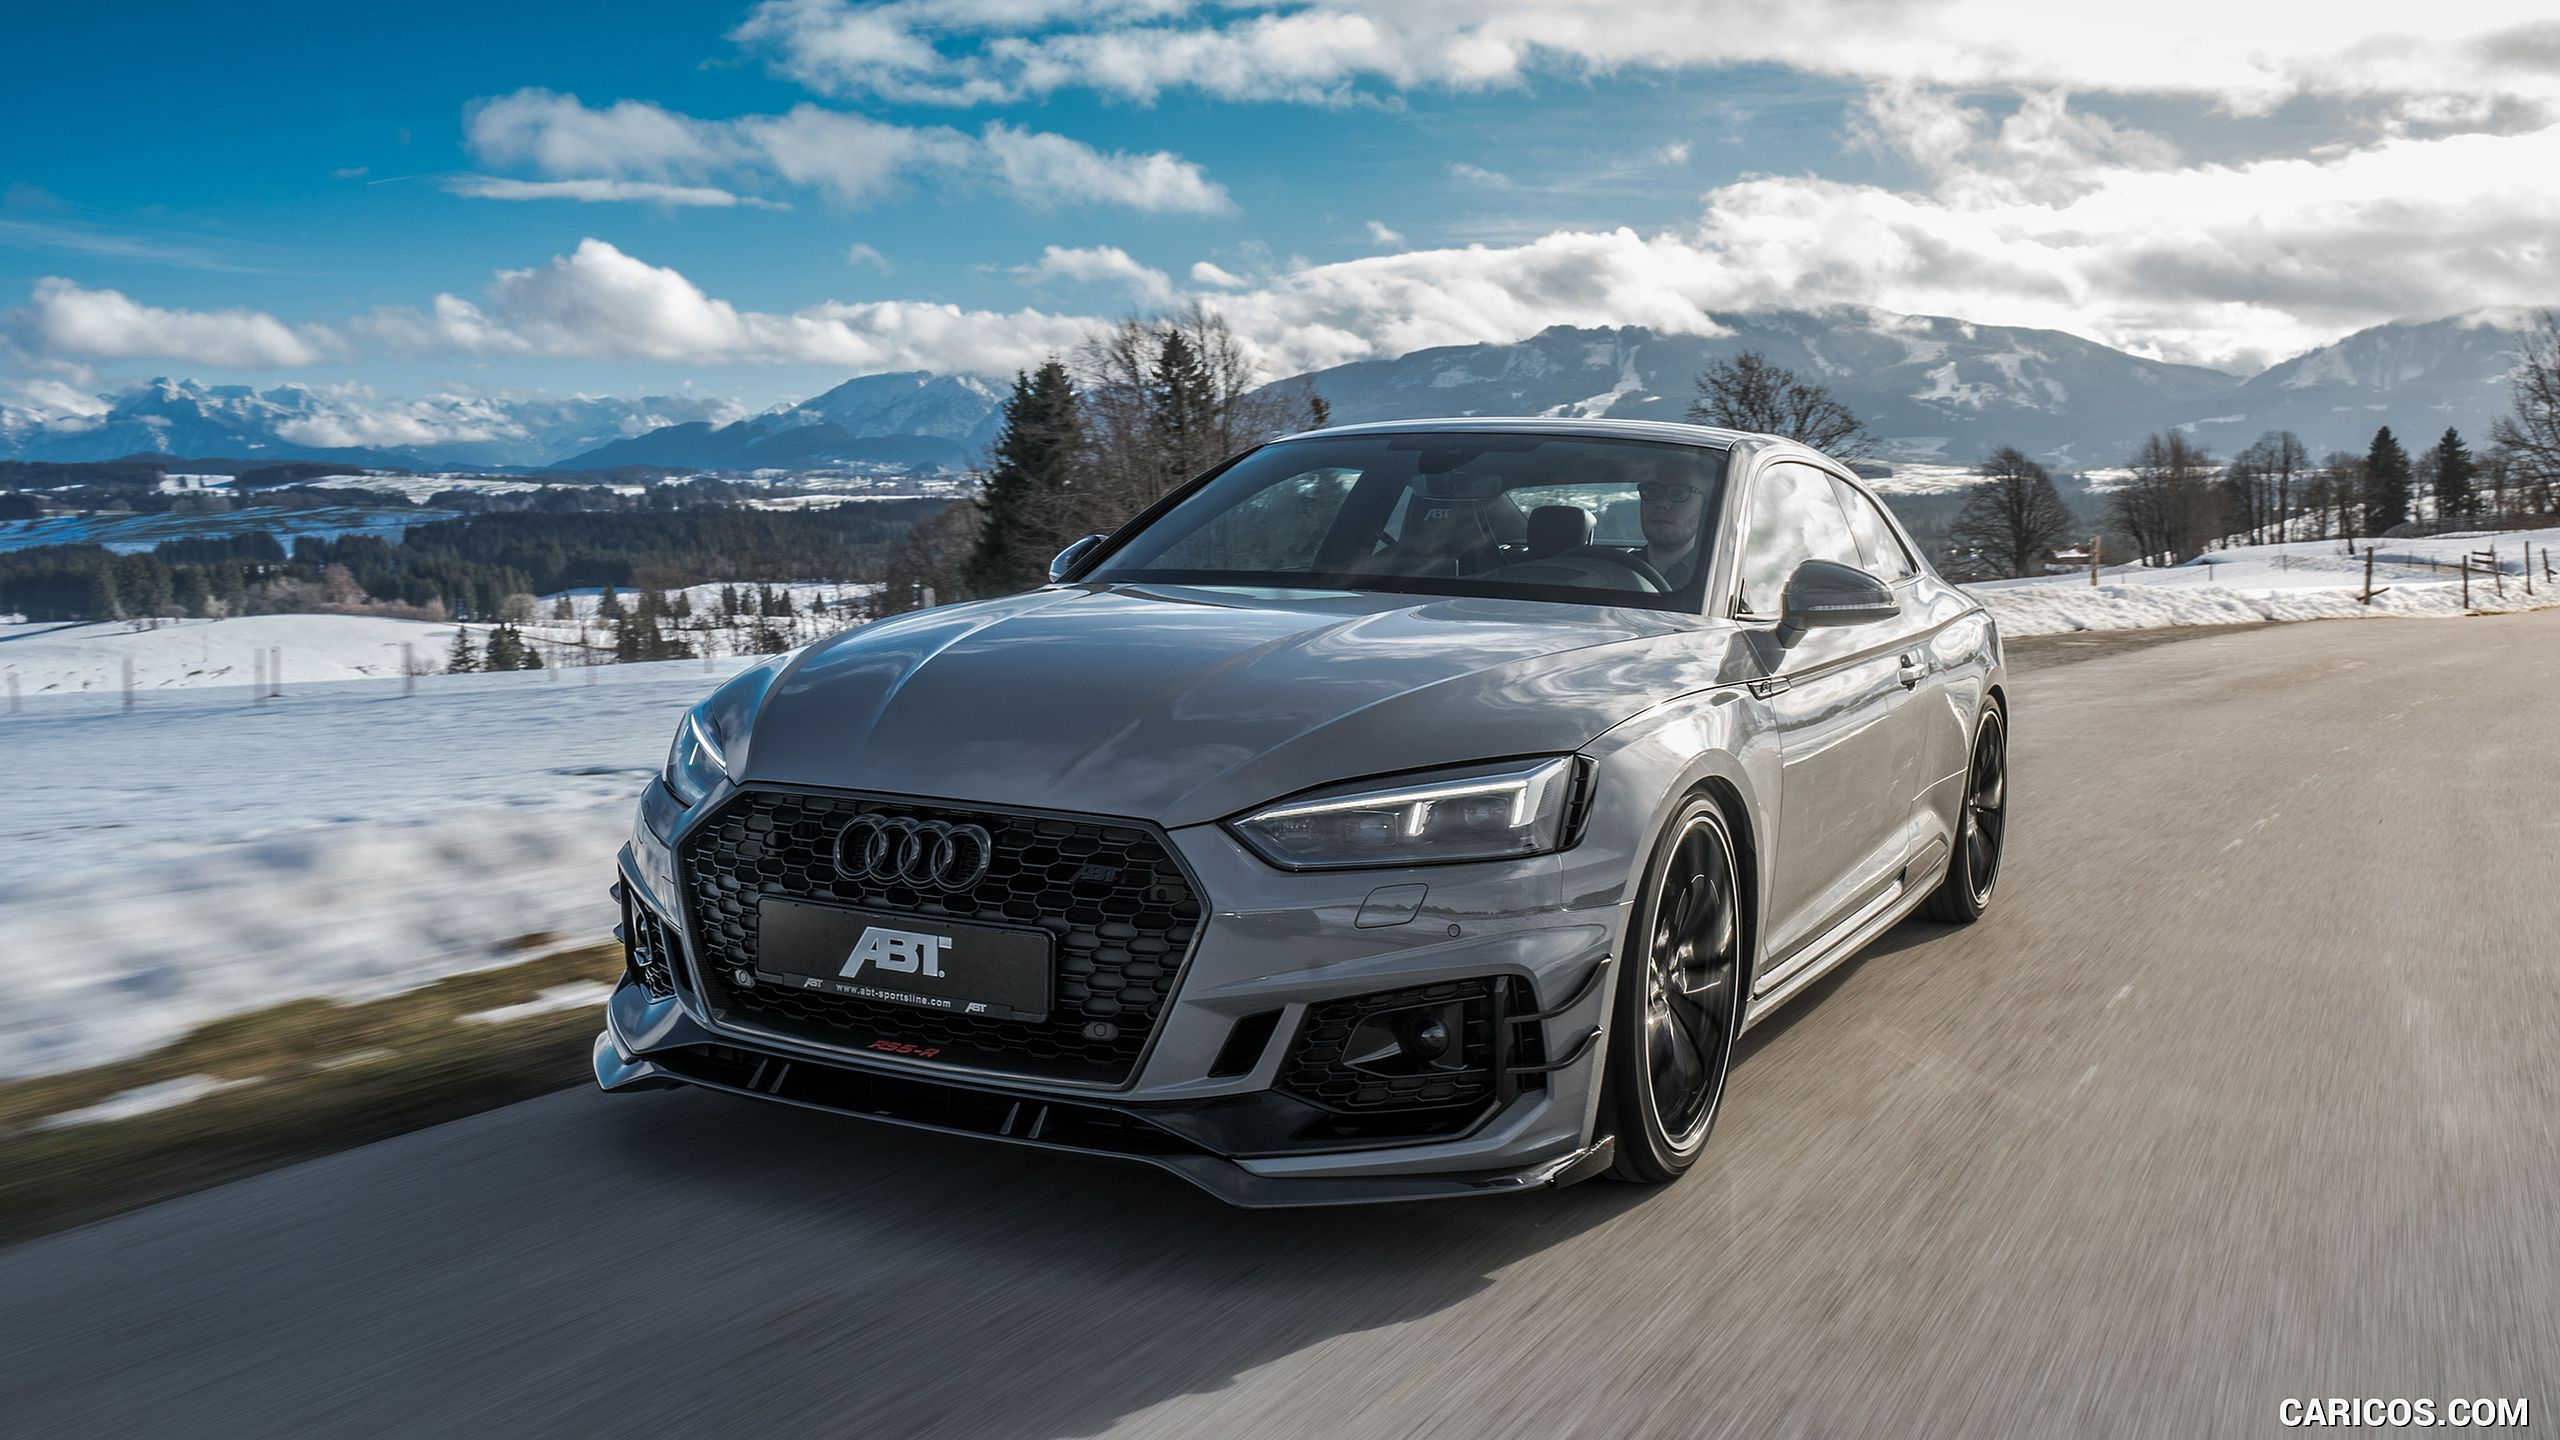 Audi Rs5 Wallpapers Top Free Audi Rs5 Backgrounds